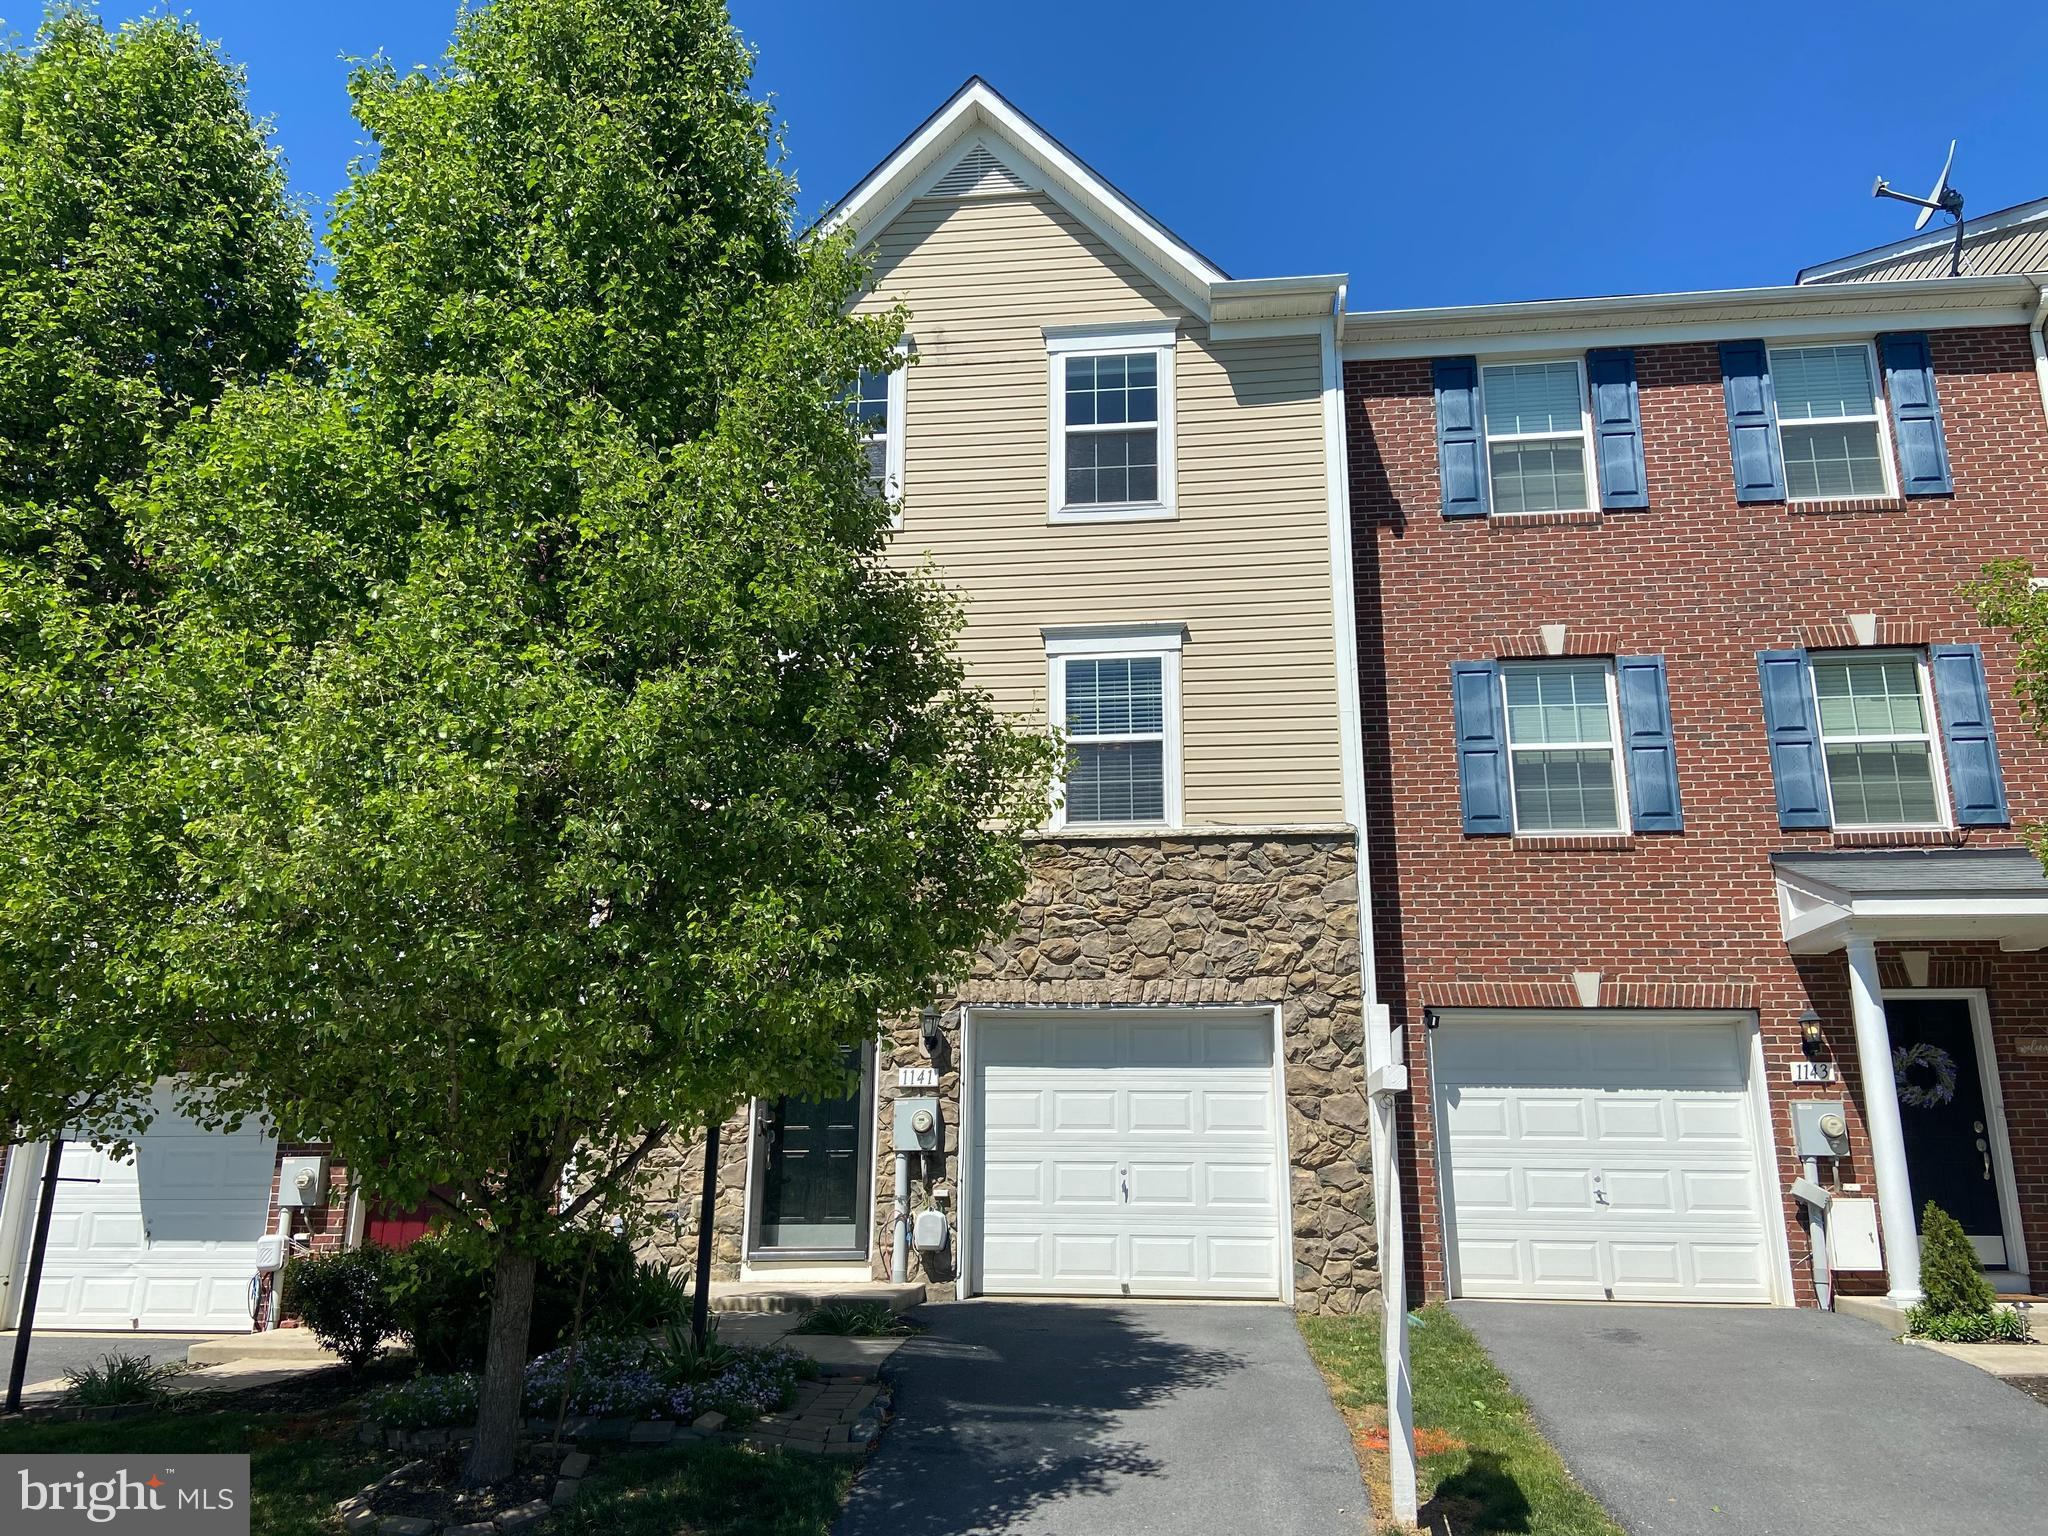 3 LEVEL GARAGE TOWNHOME OFFERS 3 BEDROOMS, 2 FULL AND 2 HALF BATHS. FEATURES FINISHED  WALK OUT LOWE